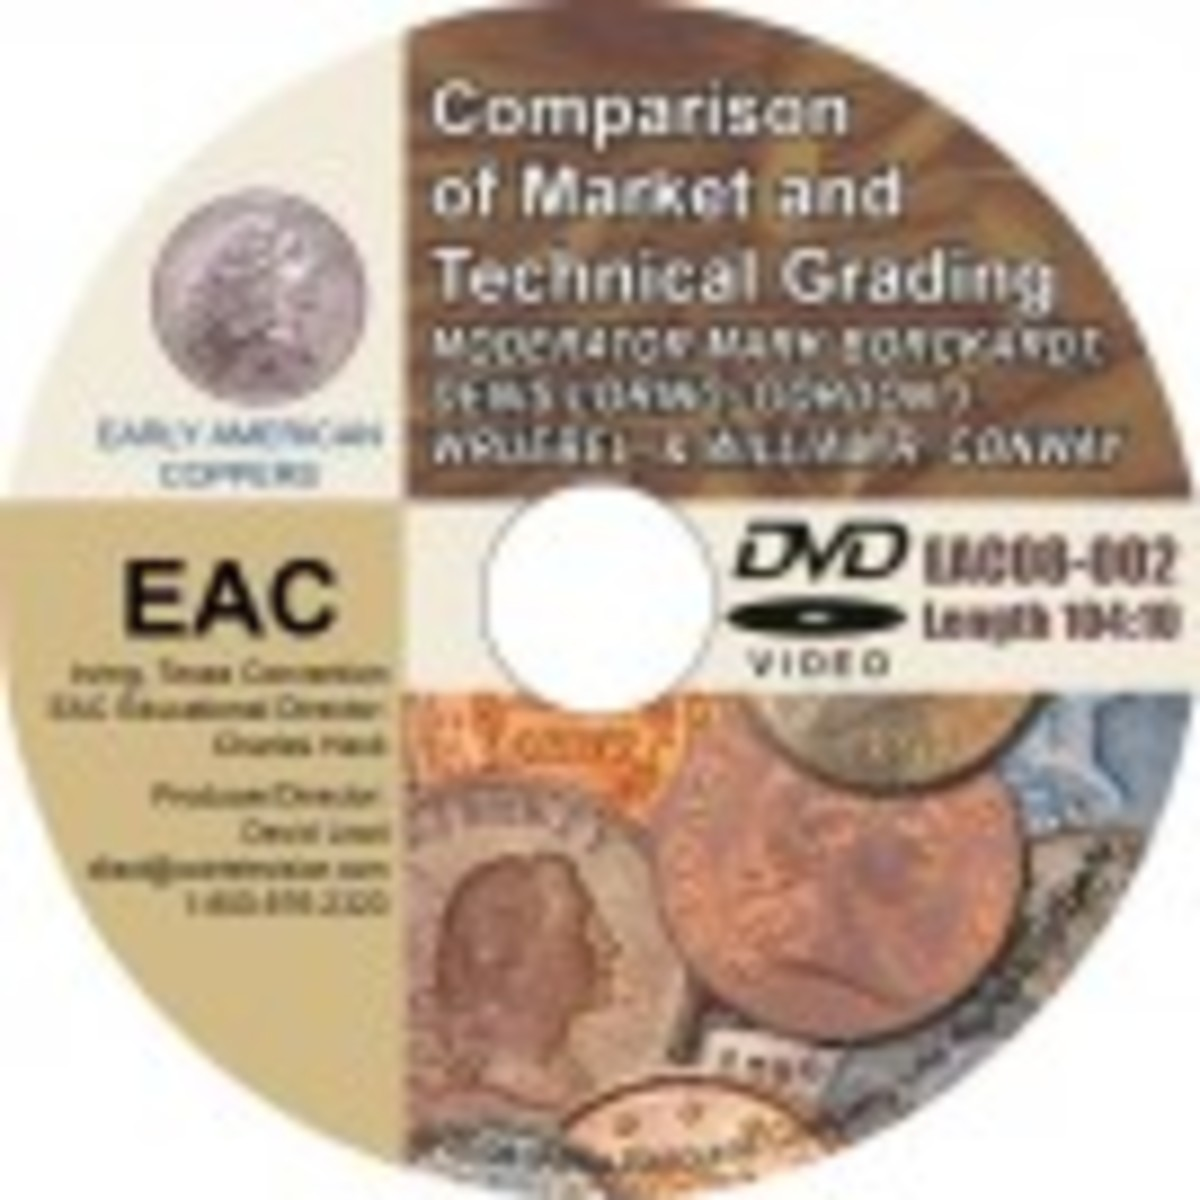 Comparison of Market and Technical Grading